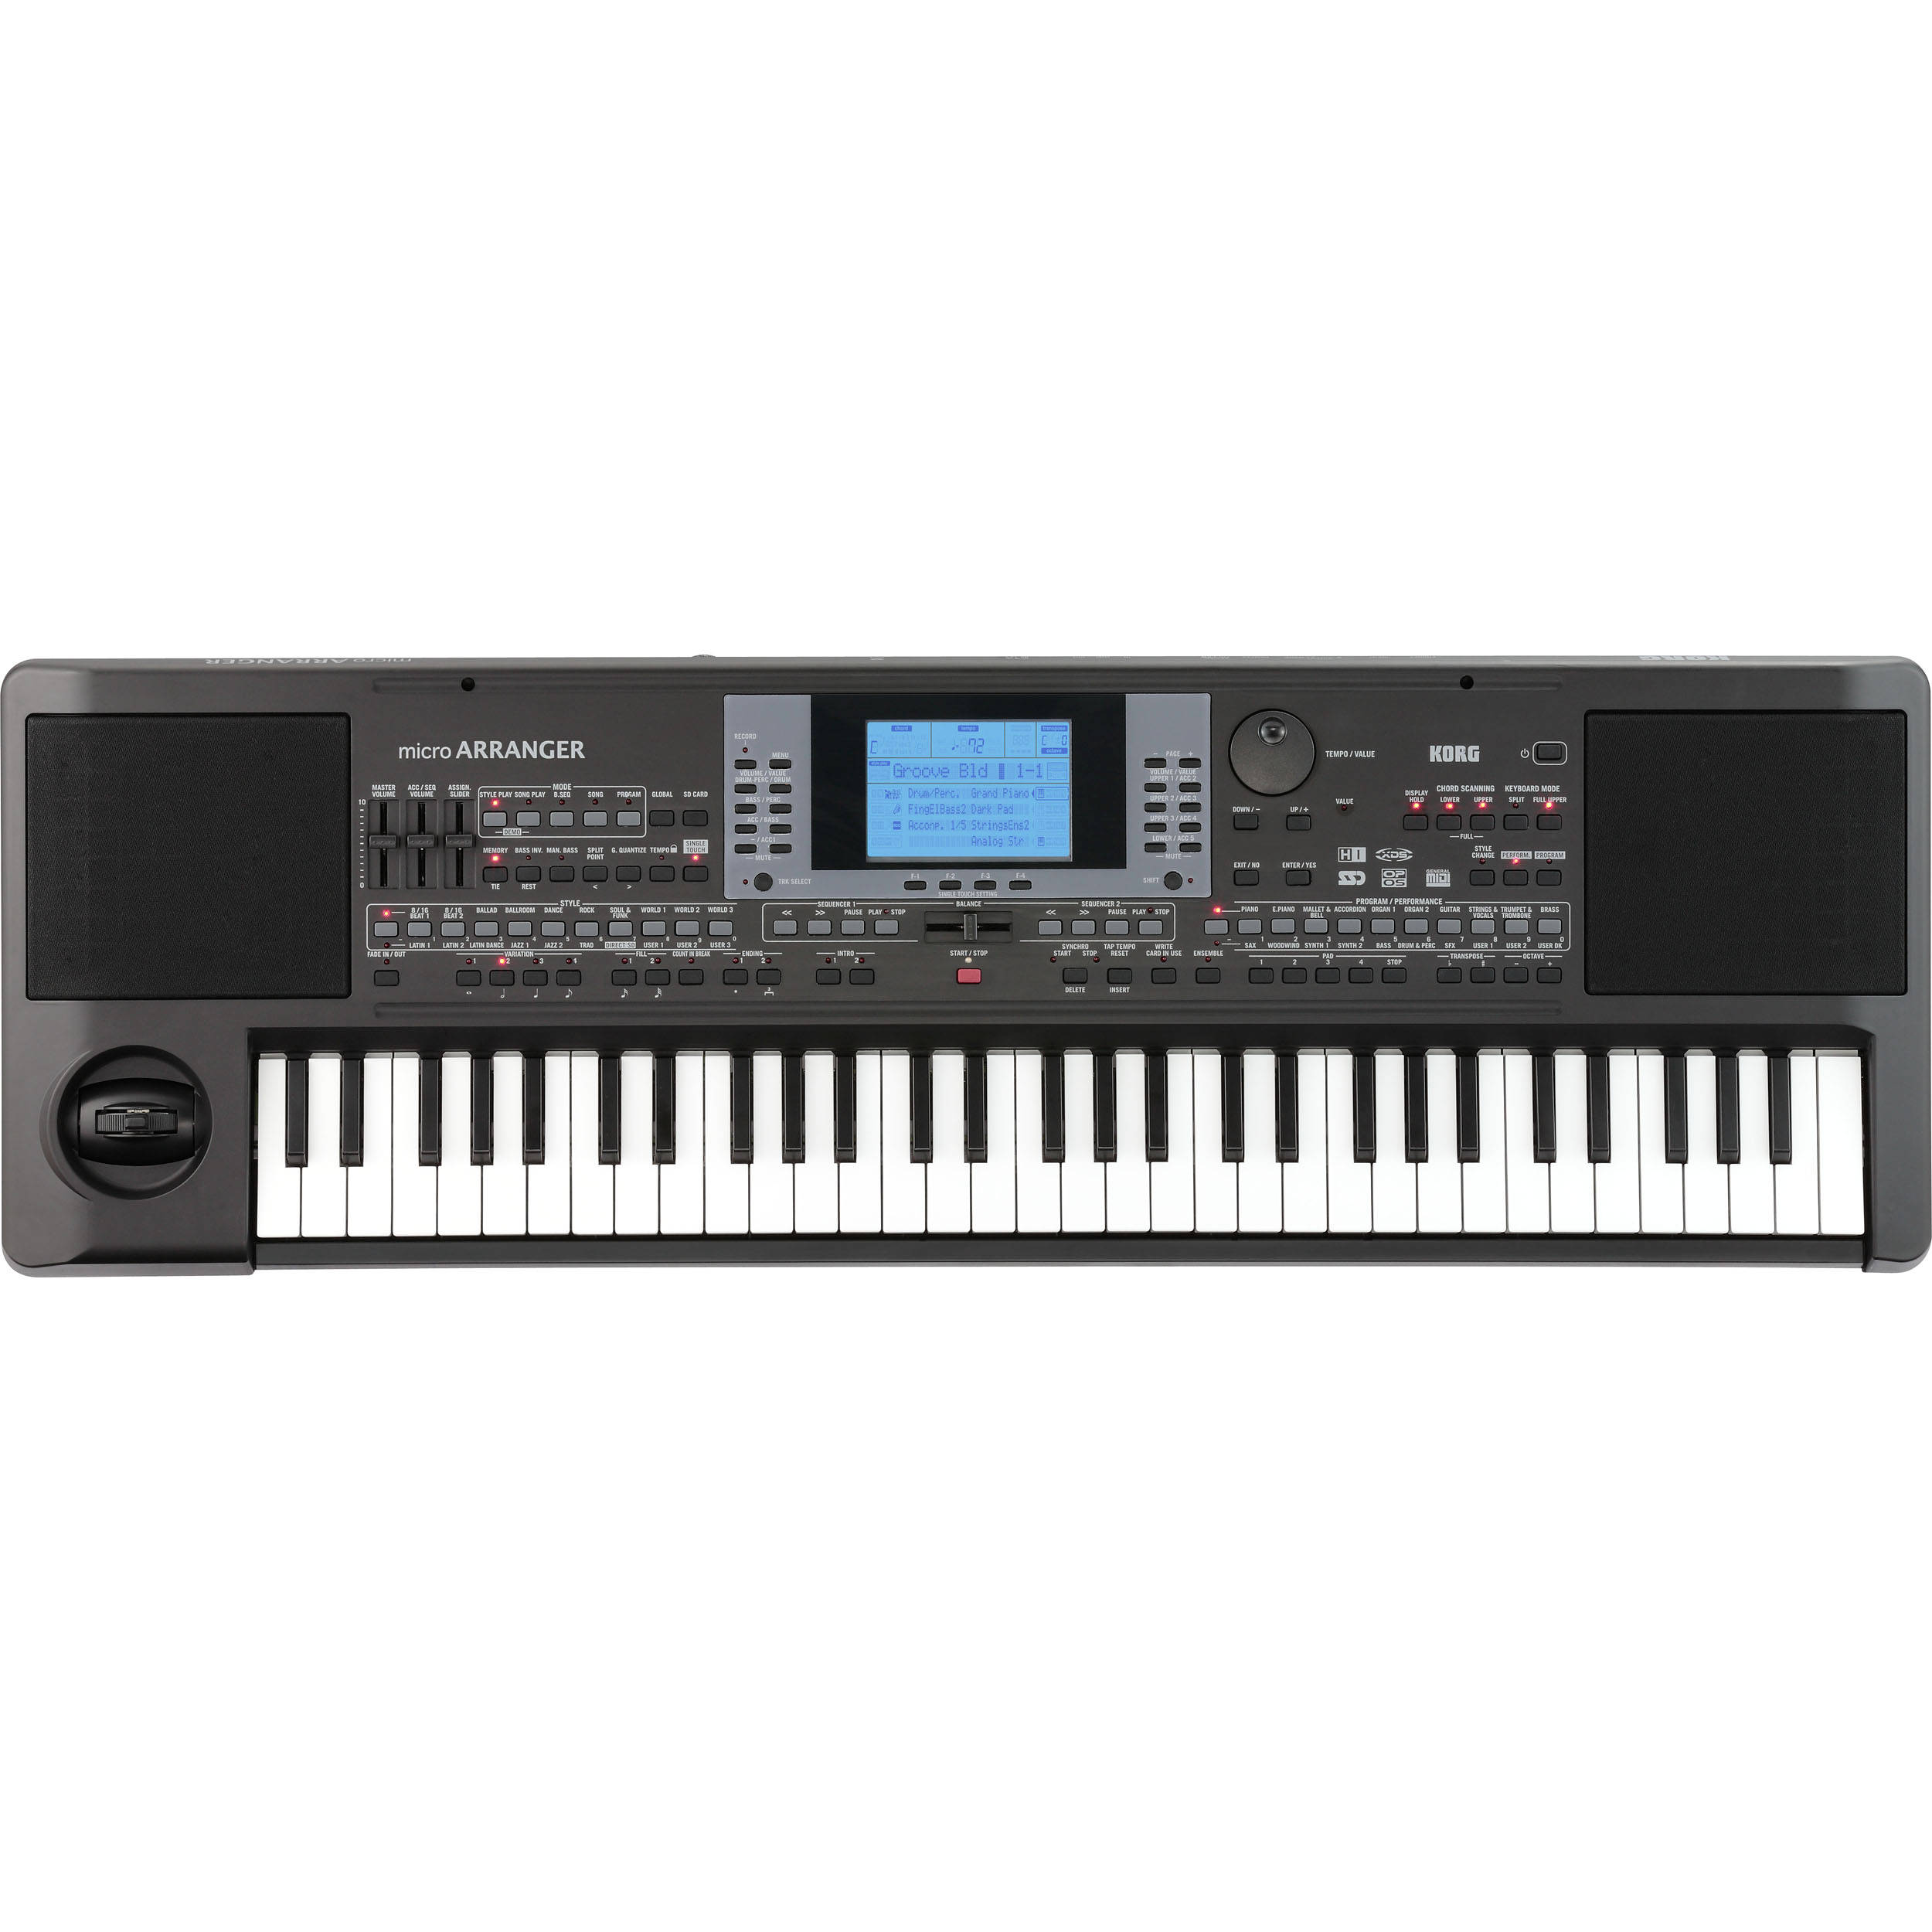 korg microarranger 61 key professional arranger mar1 b h photo rh bhphotovideo com korg microarranger review Korg microARRANGER Demo